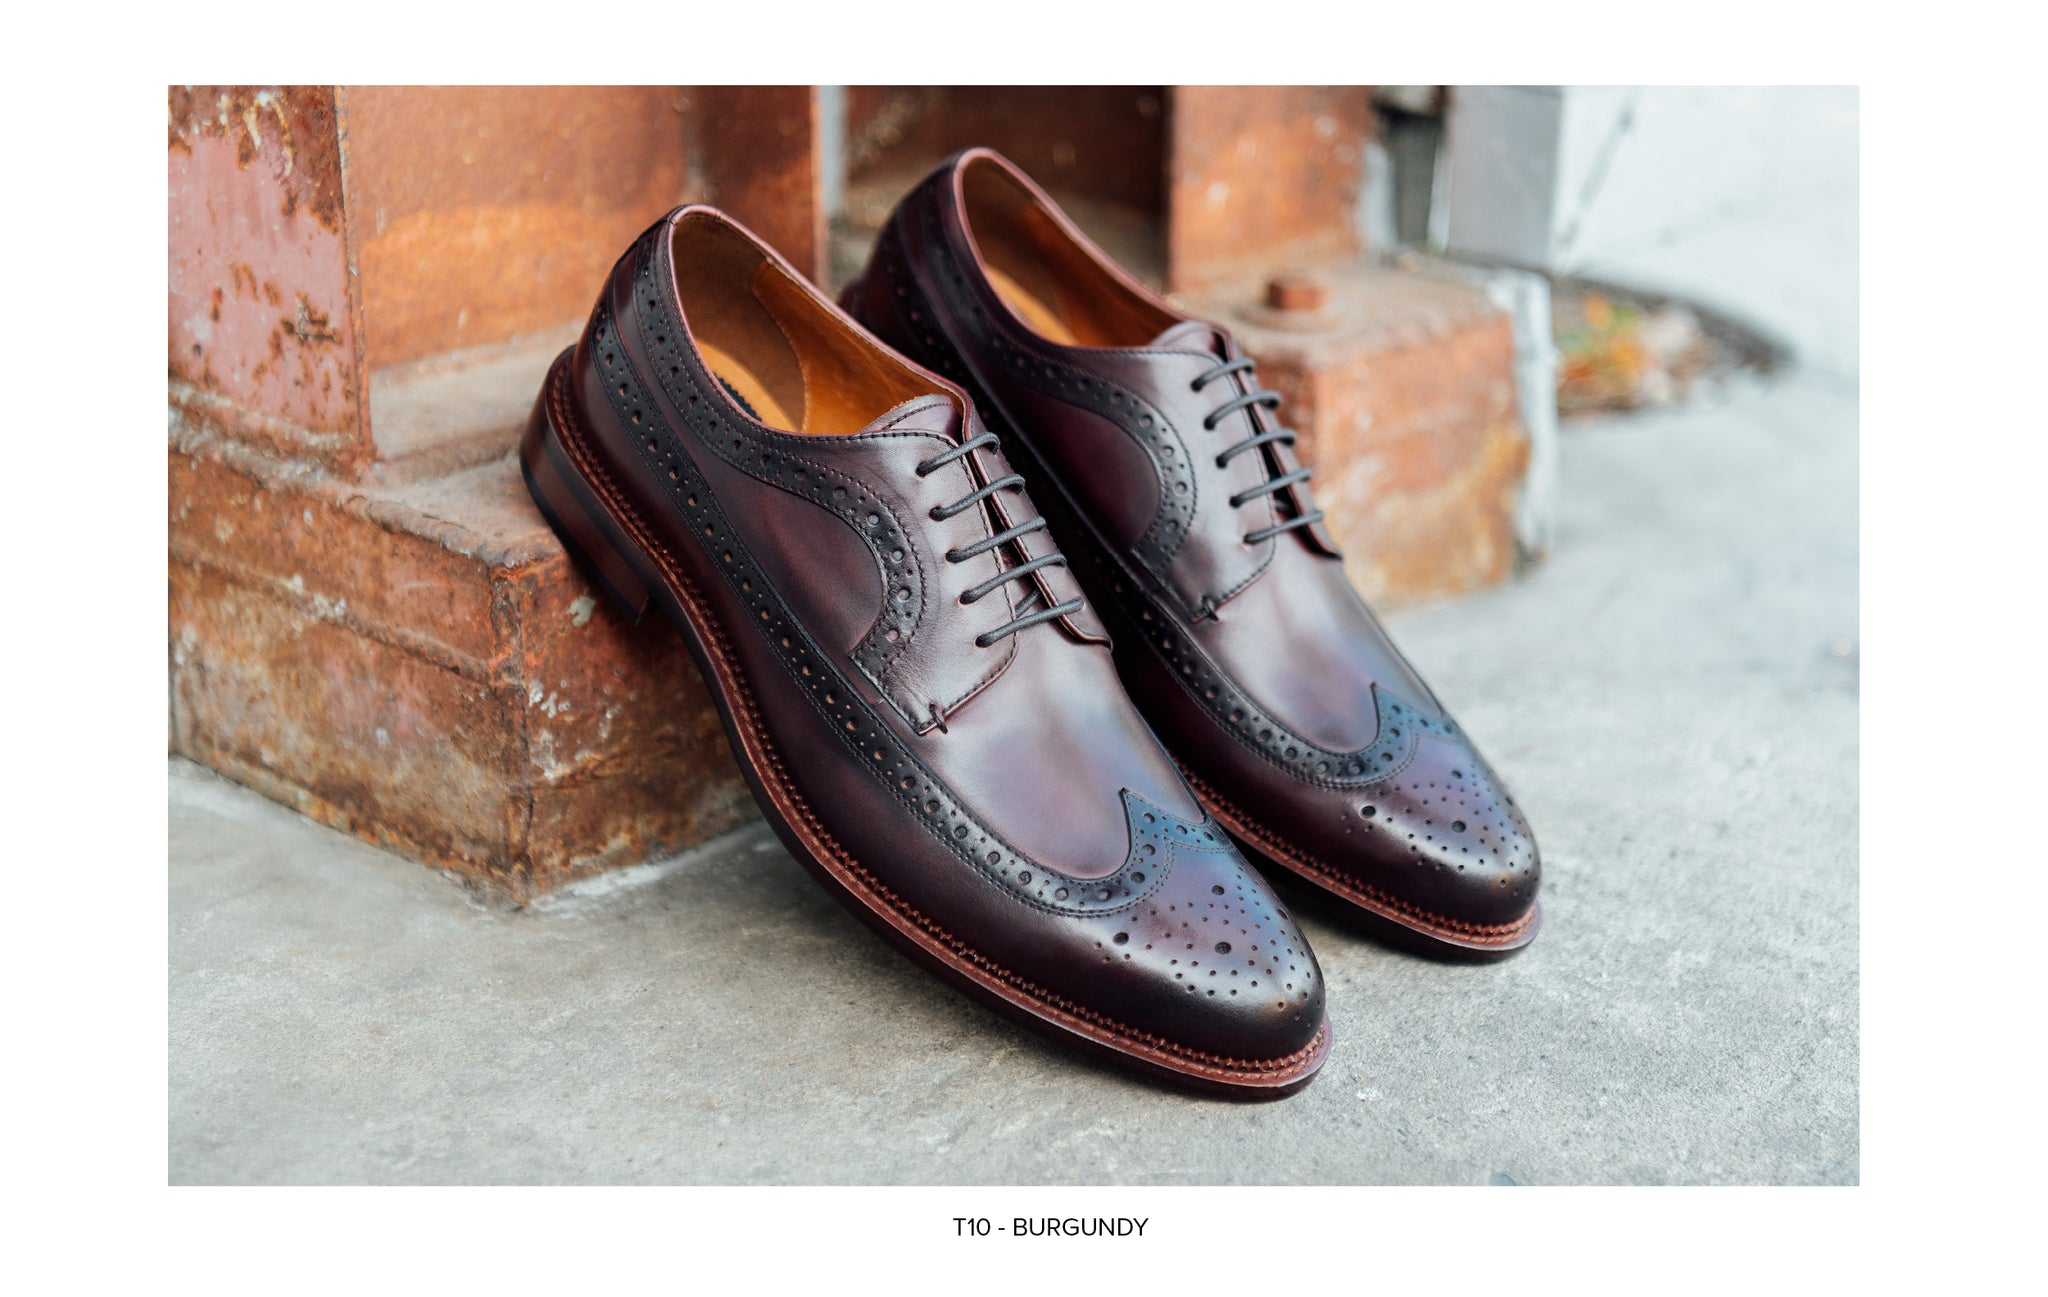 T10 Lace-Up Derby in Burgundy by Blake McKay